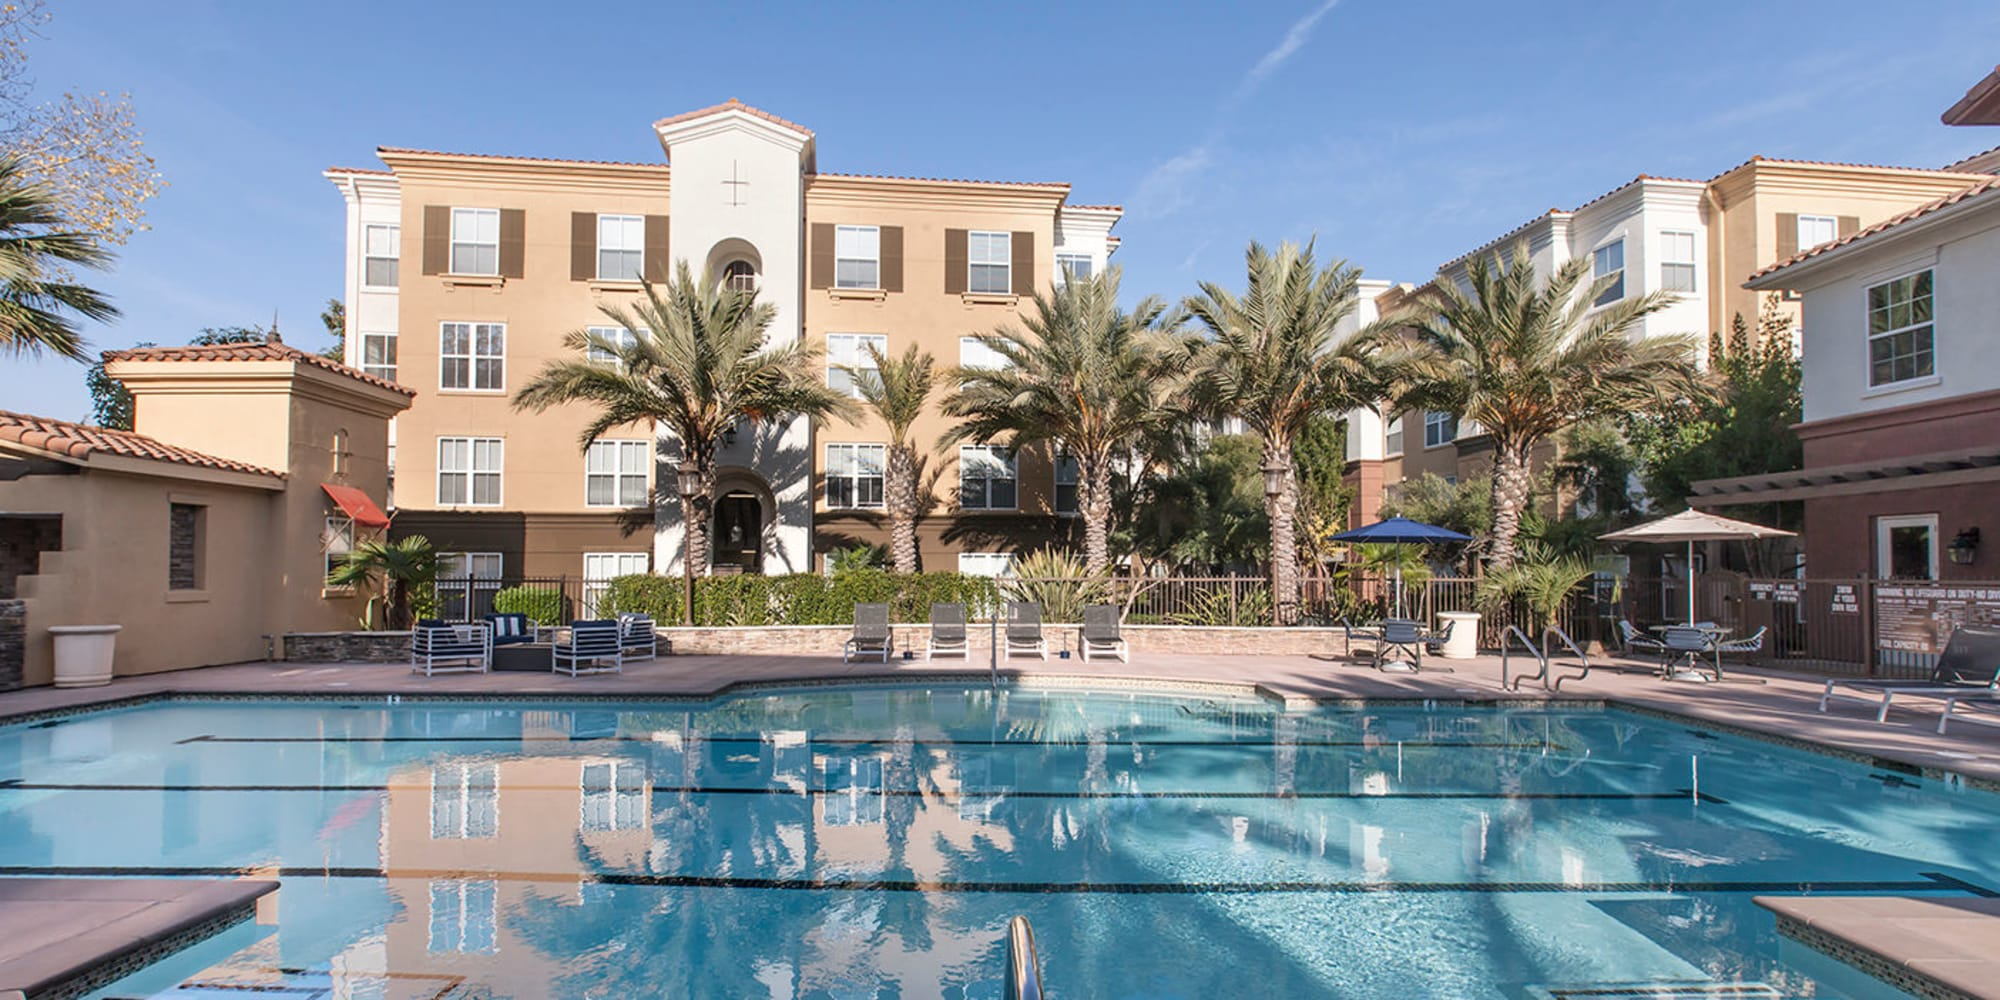 Apartments at Park Central in Concord, California